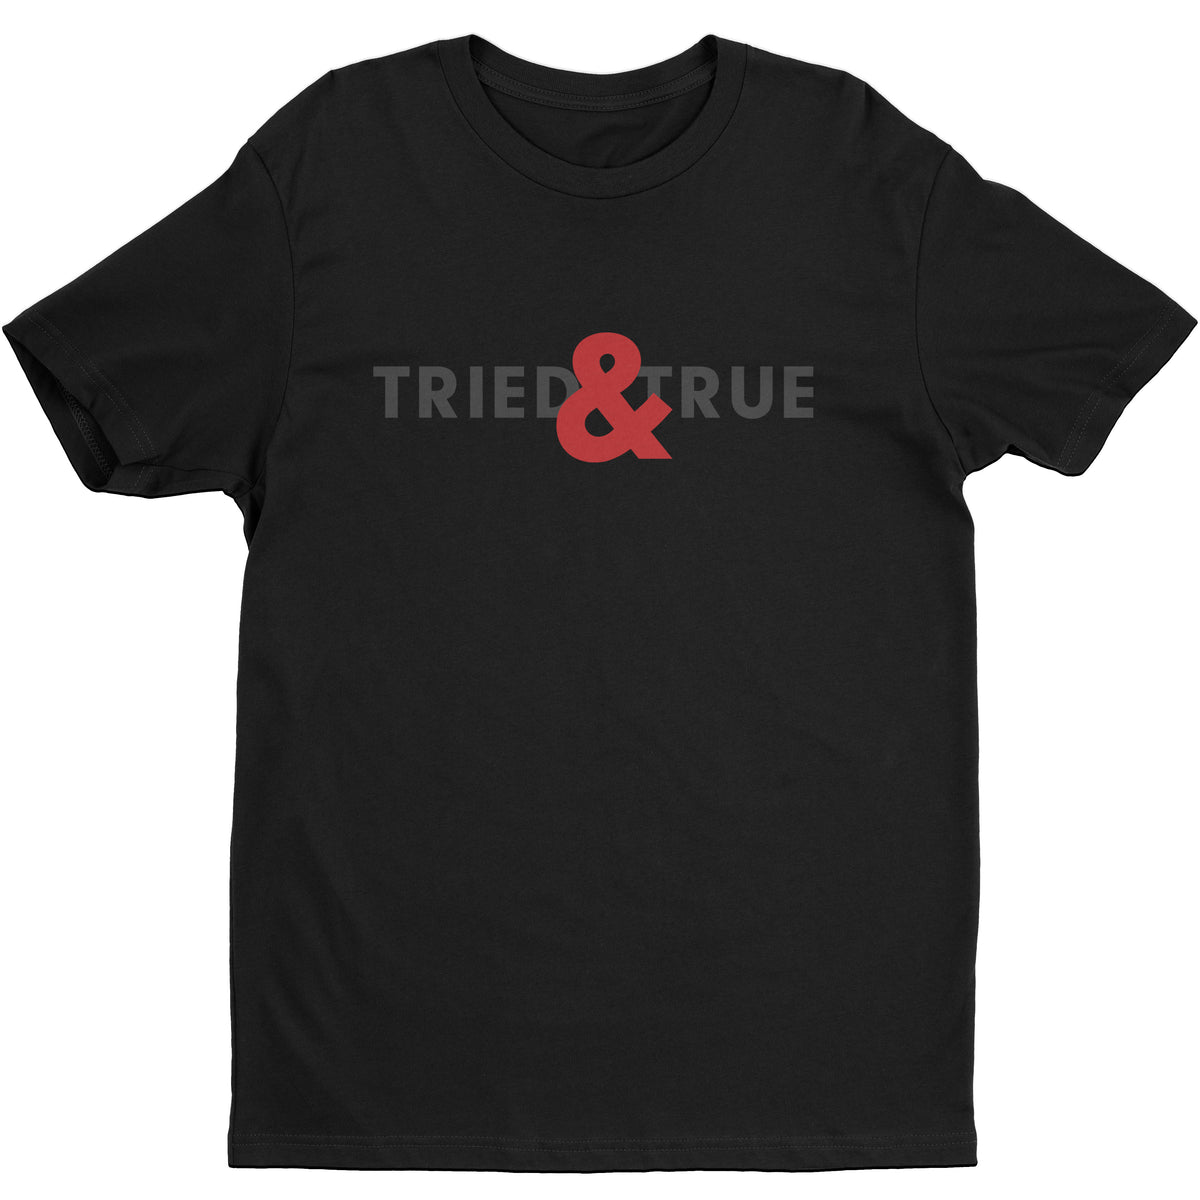 Tried & True Shirt - T-Shirt - Marriage After God